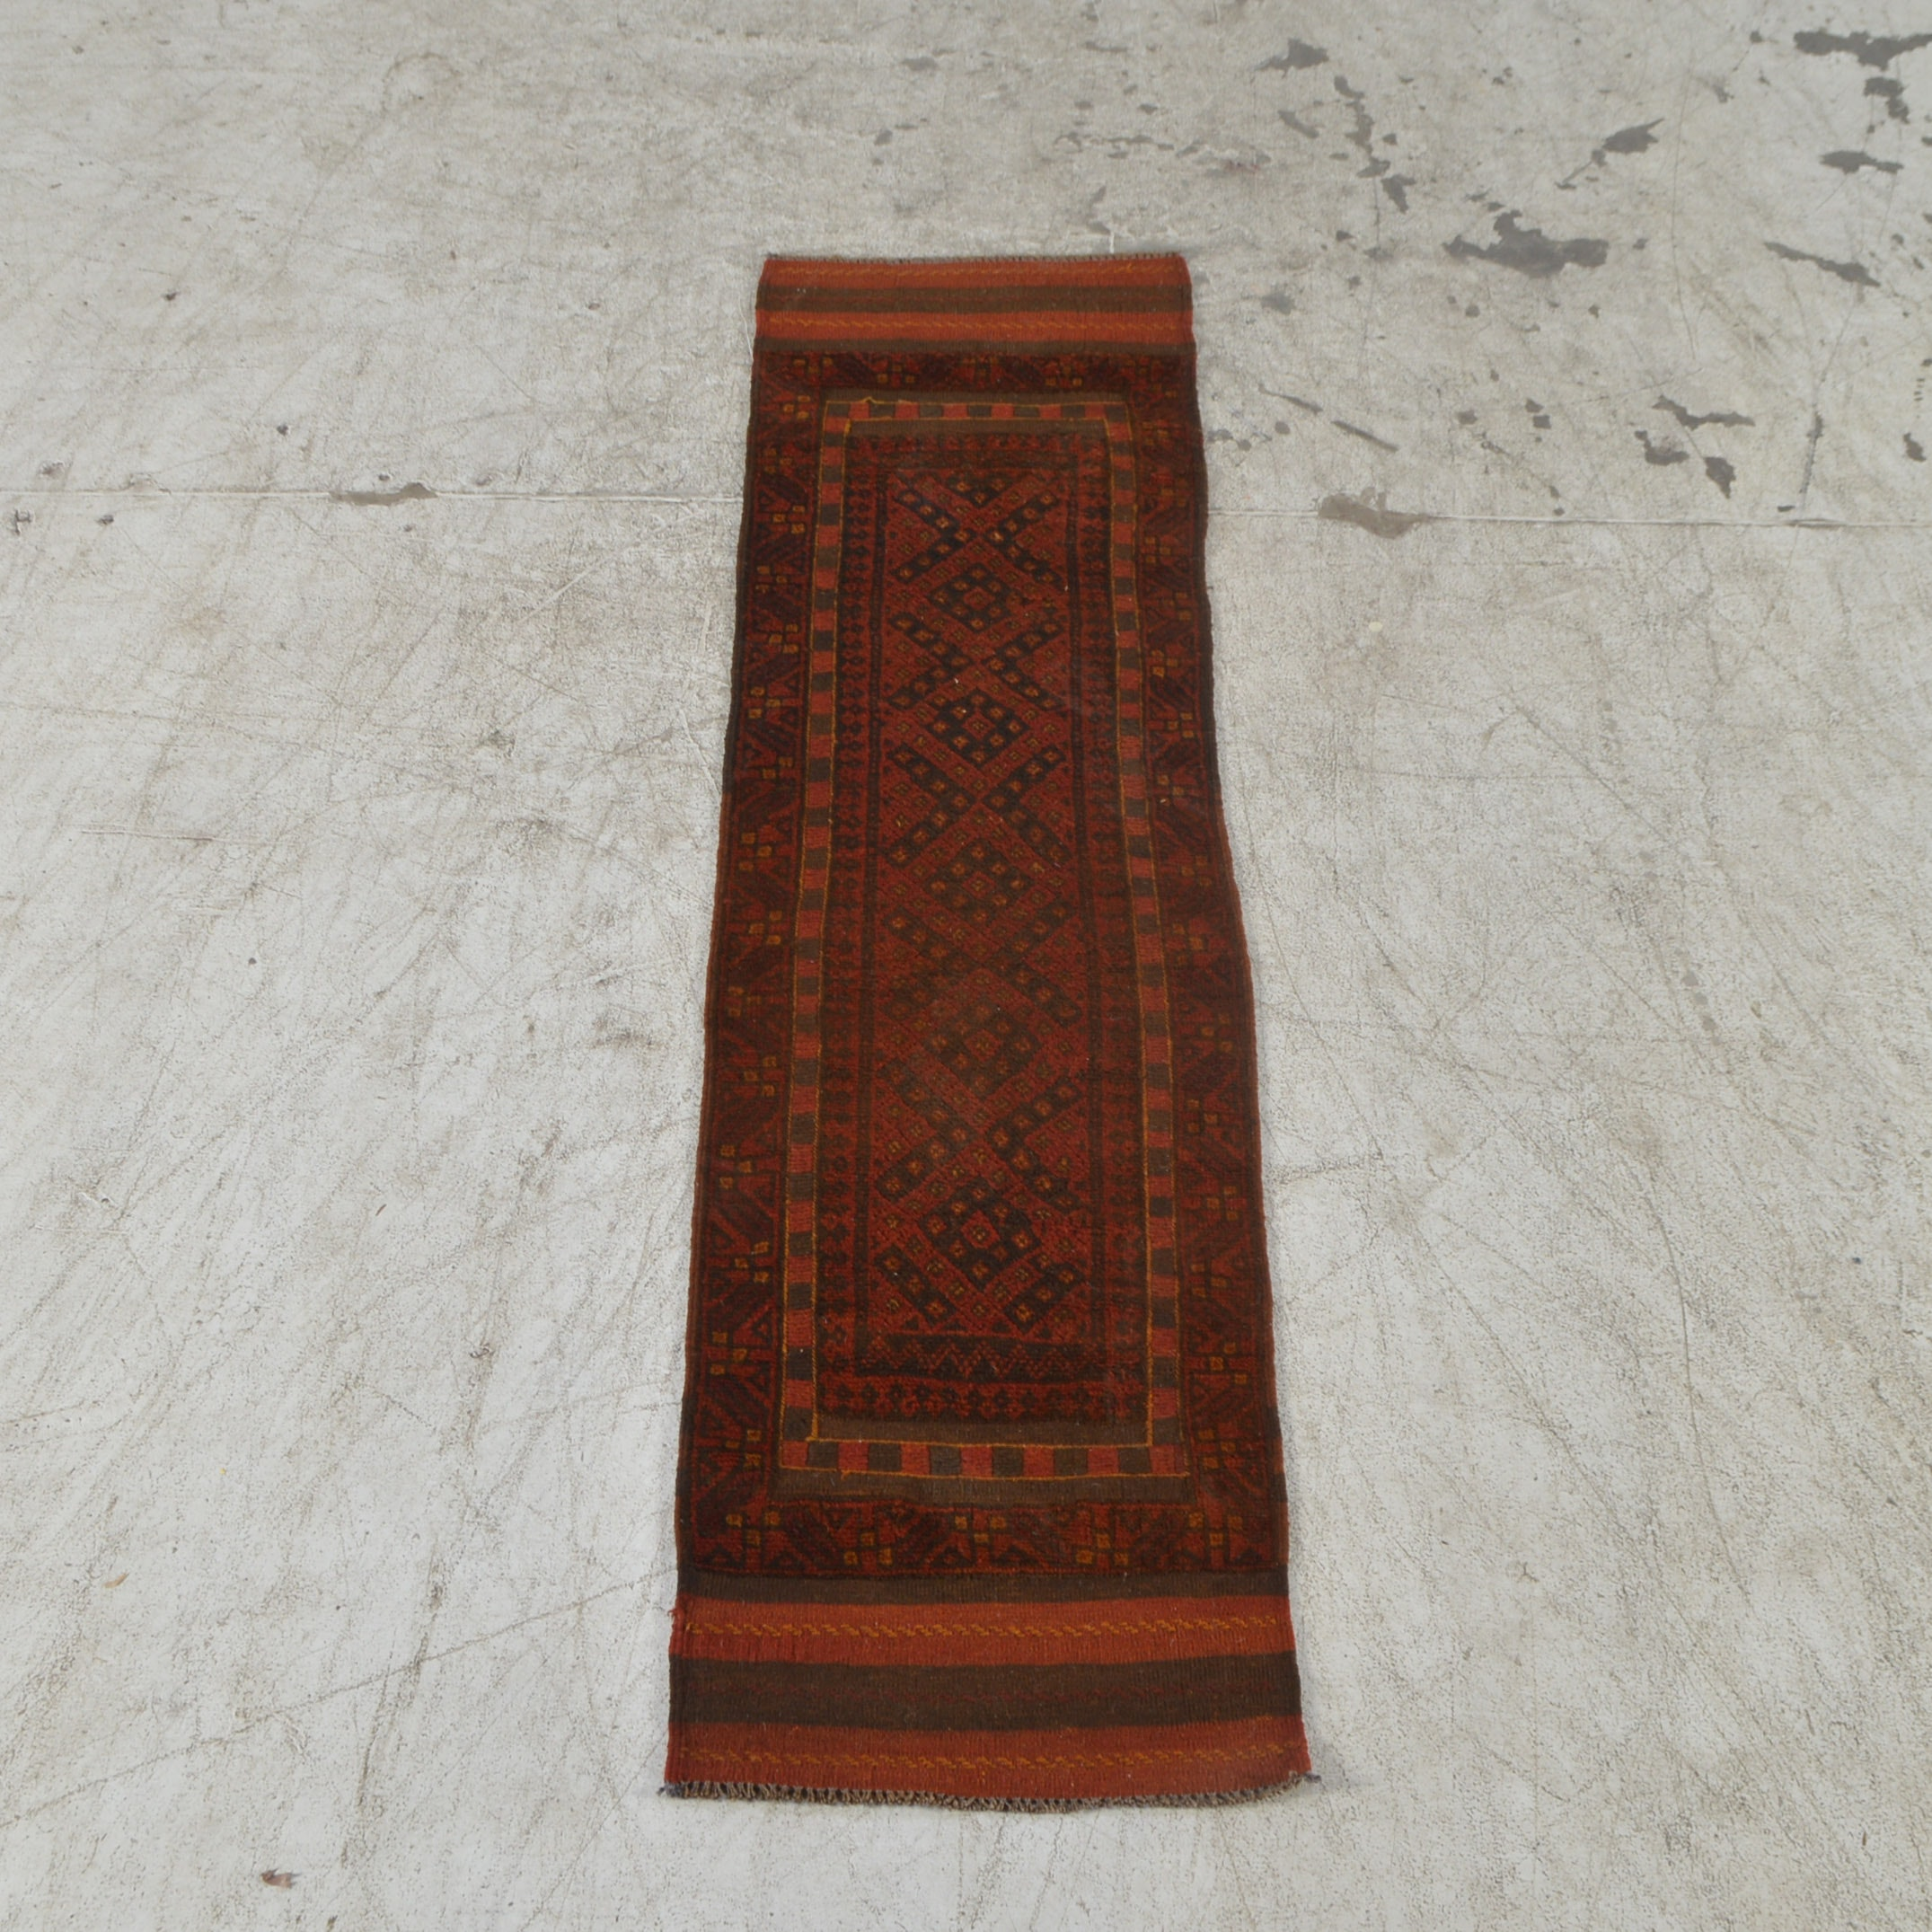 Hand-Knotted and Embroidered Baluch Wool Carpet Runner